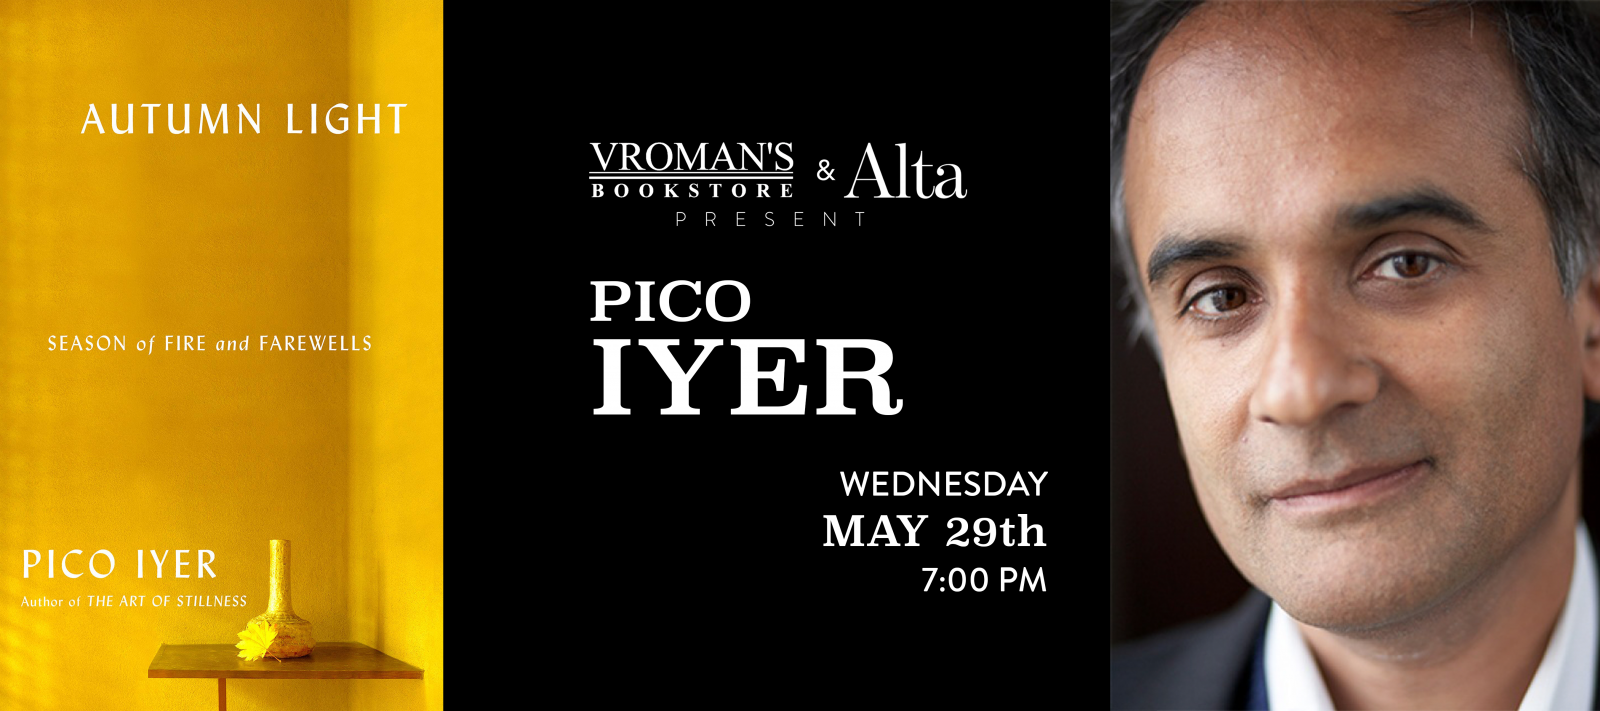 Pico Iyer book signing Wednesday May 29th at 7pm